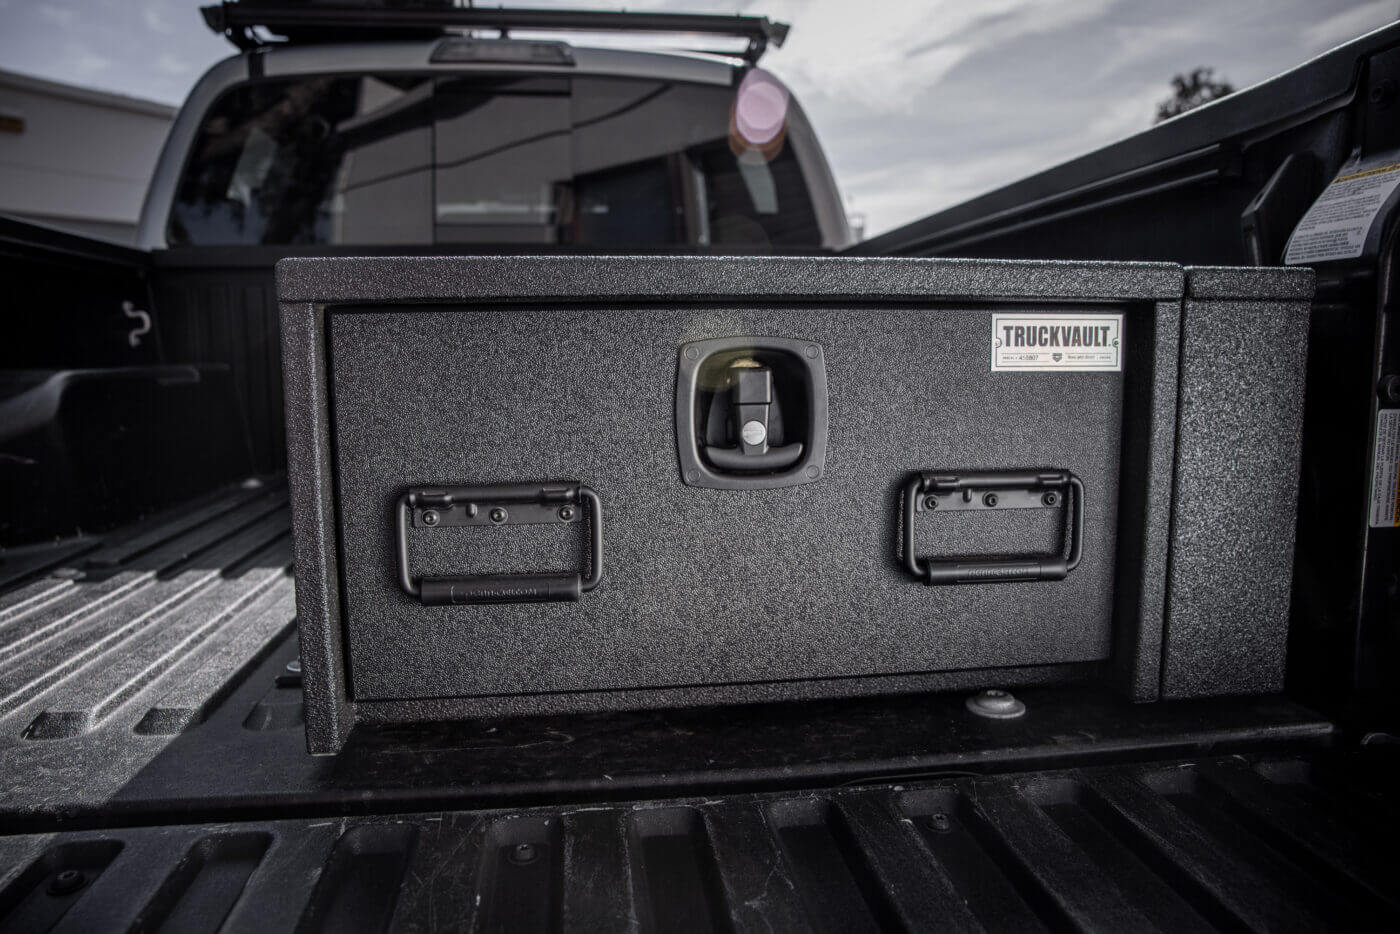 All-Weather Truck Vault installed